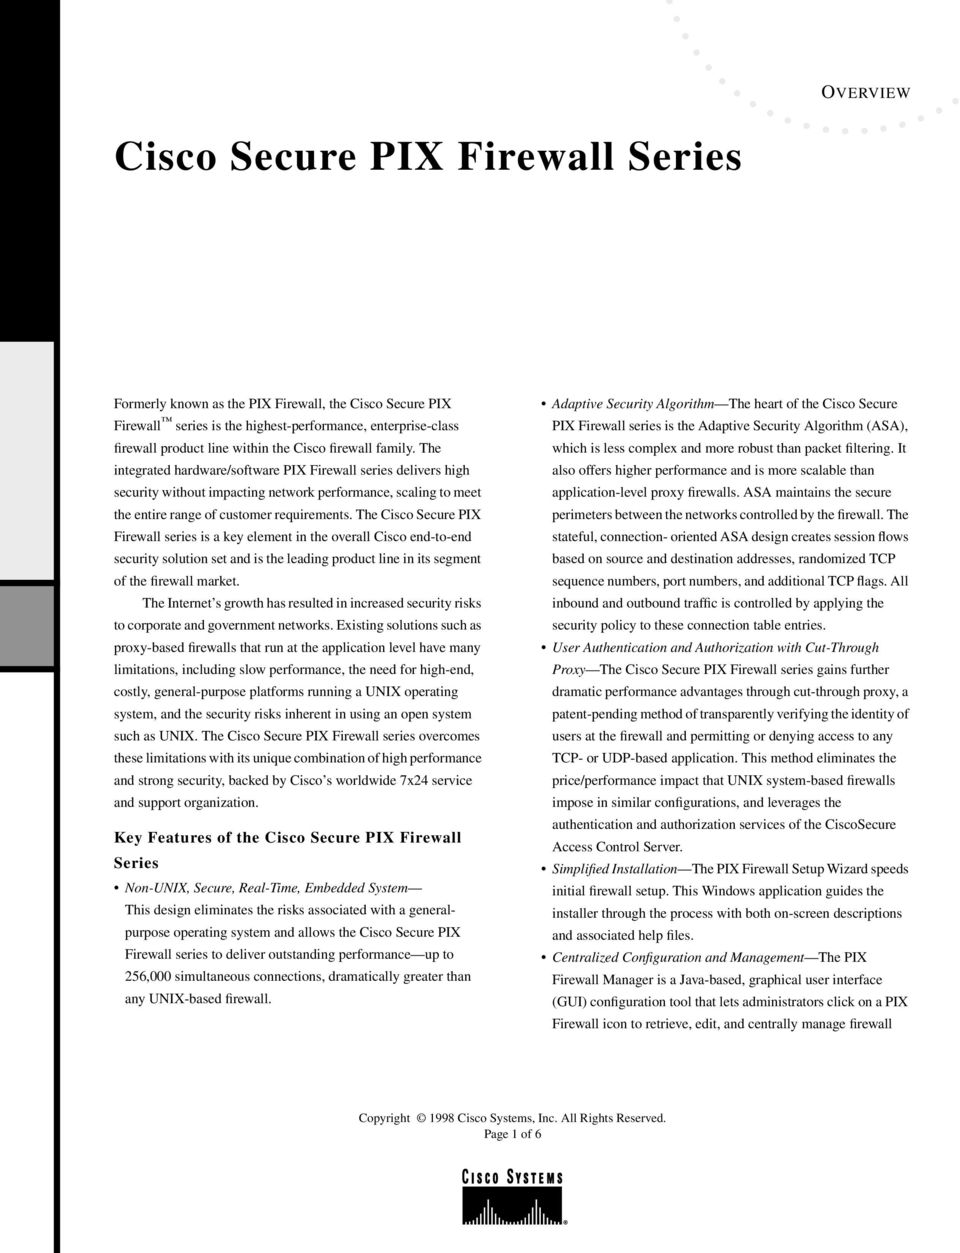 The Cisco Secure PIX Firewall series is a key element in the overall Cisco end-to-end security solution set and is the leading product line in its segment of the firewall market.